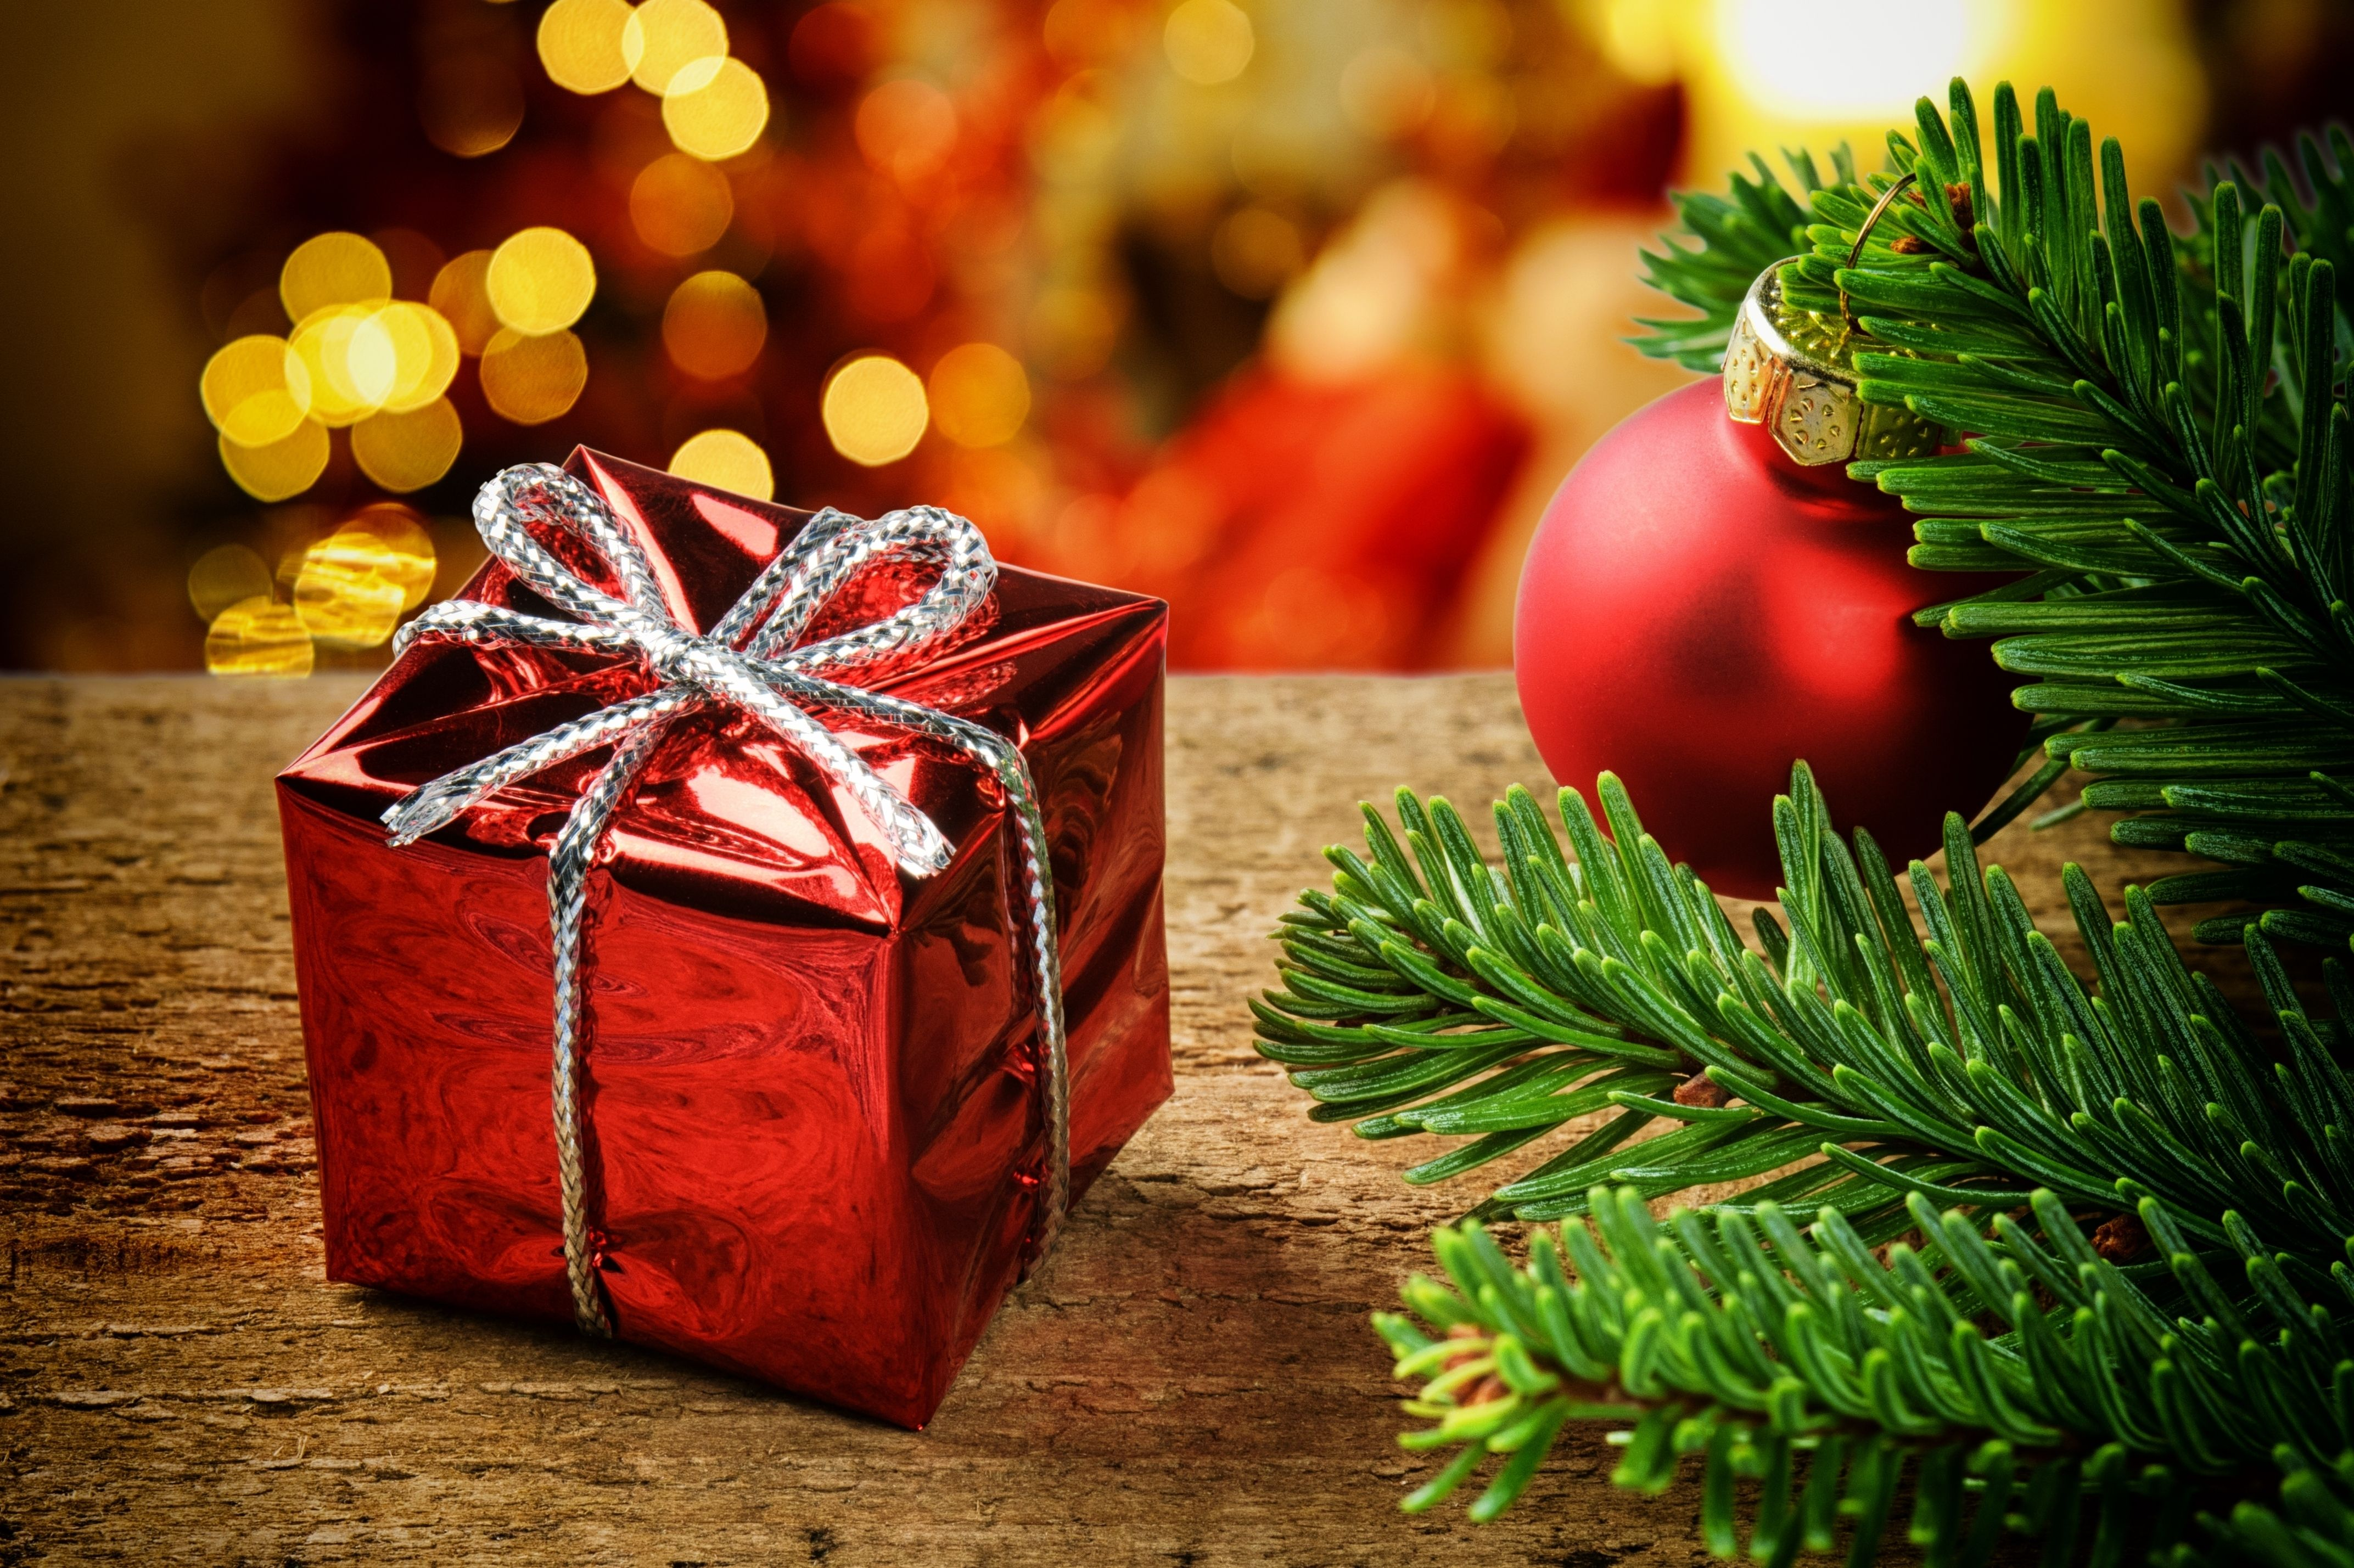 Holidays Christmas Gifts Wallpaper Presents For New Year 4288x2857 Download Hd Wallpaper Wallpapertip